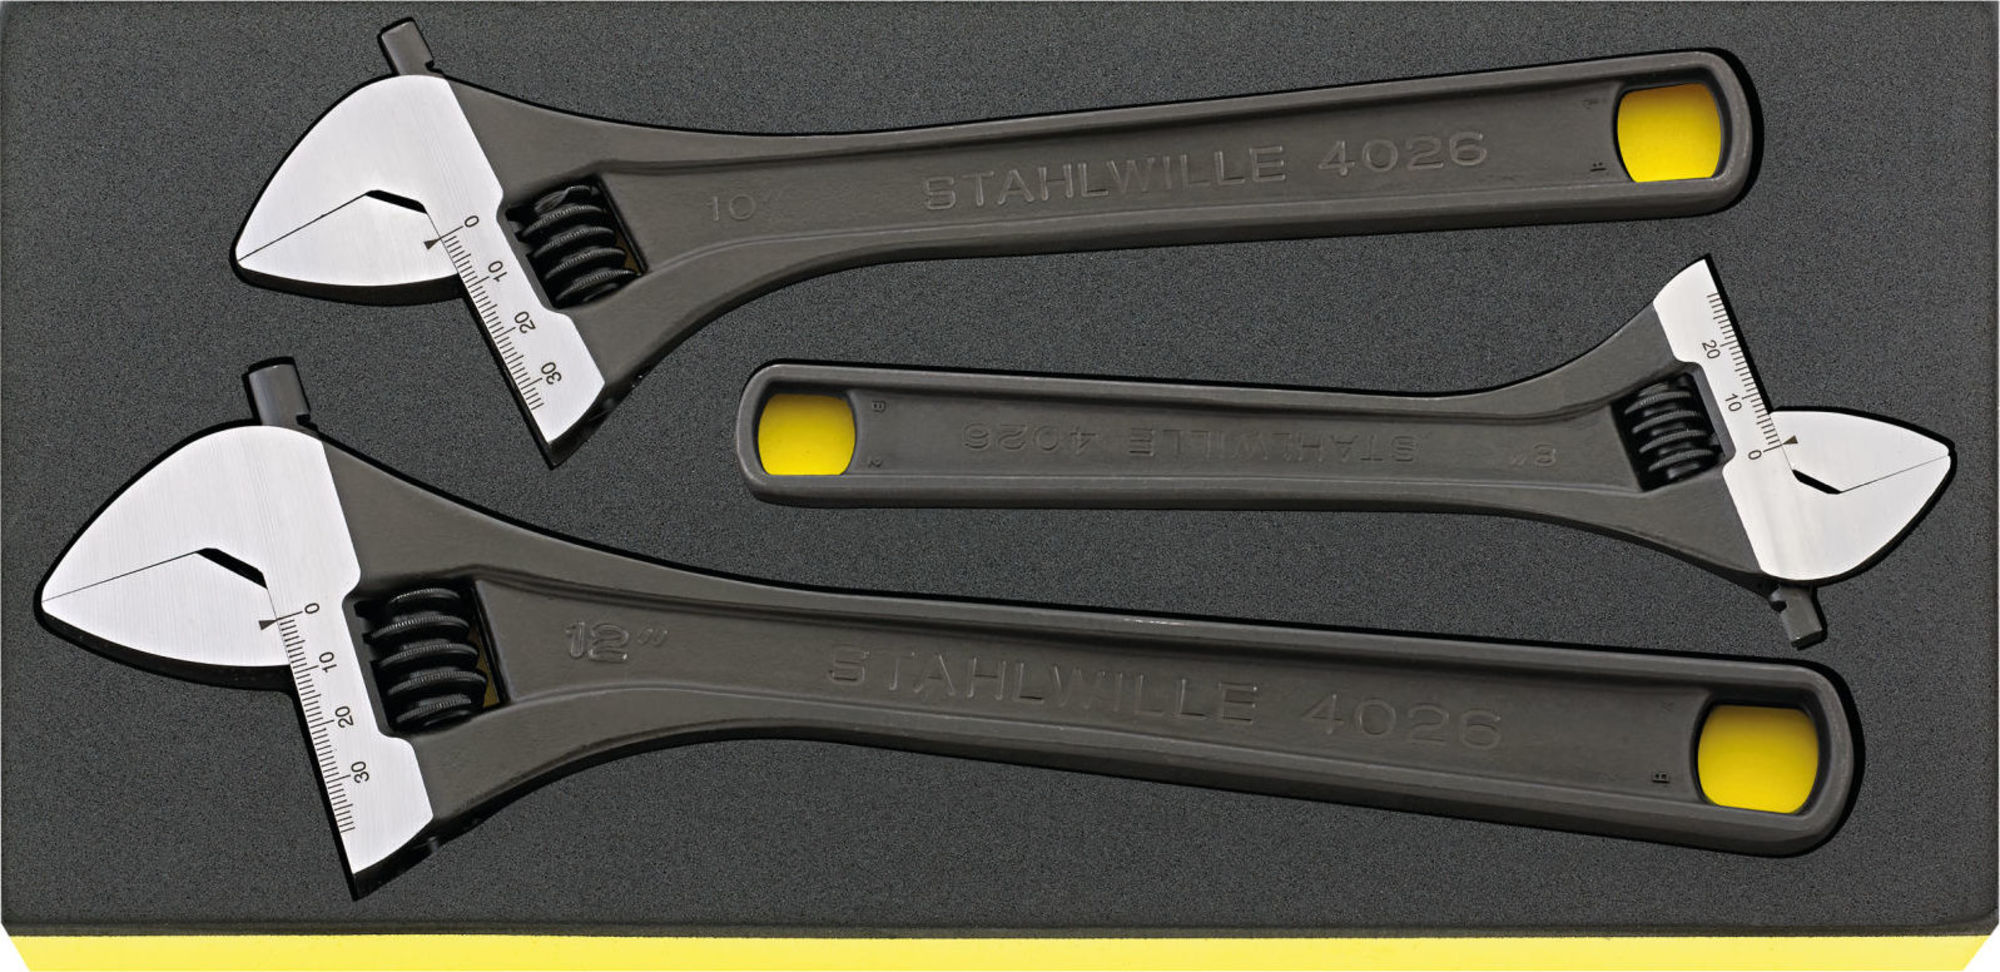 Stahlwille Single-end spanners i.TCS inlay No.TCS 4026/3 1/3 3-pcs.